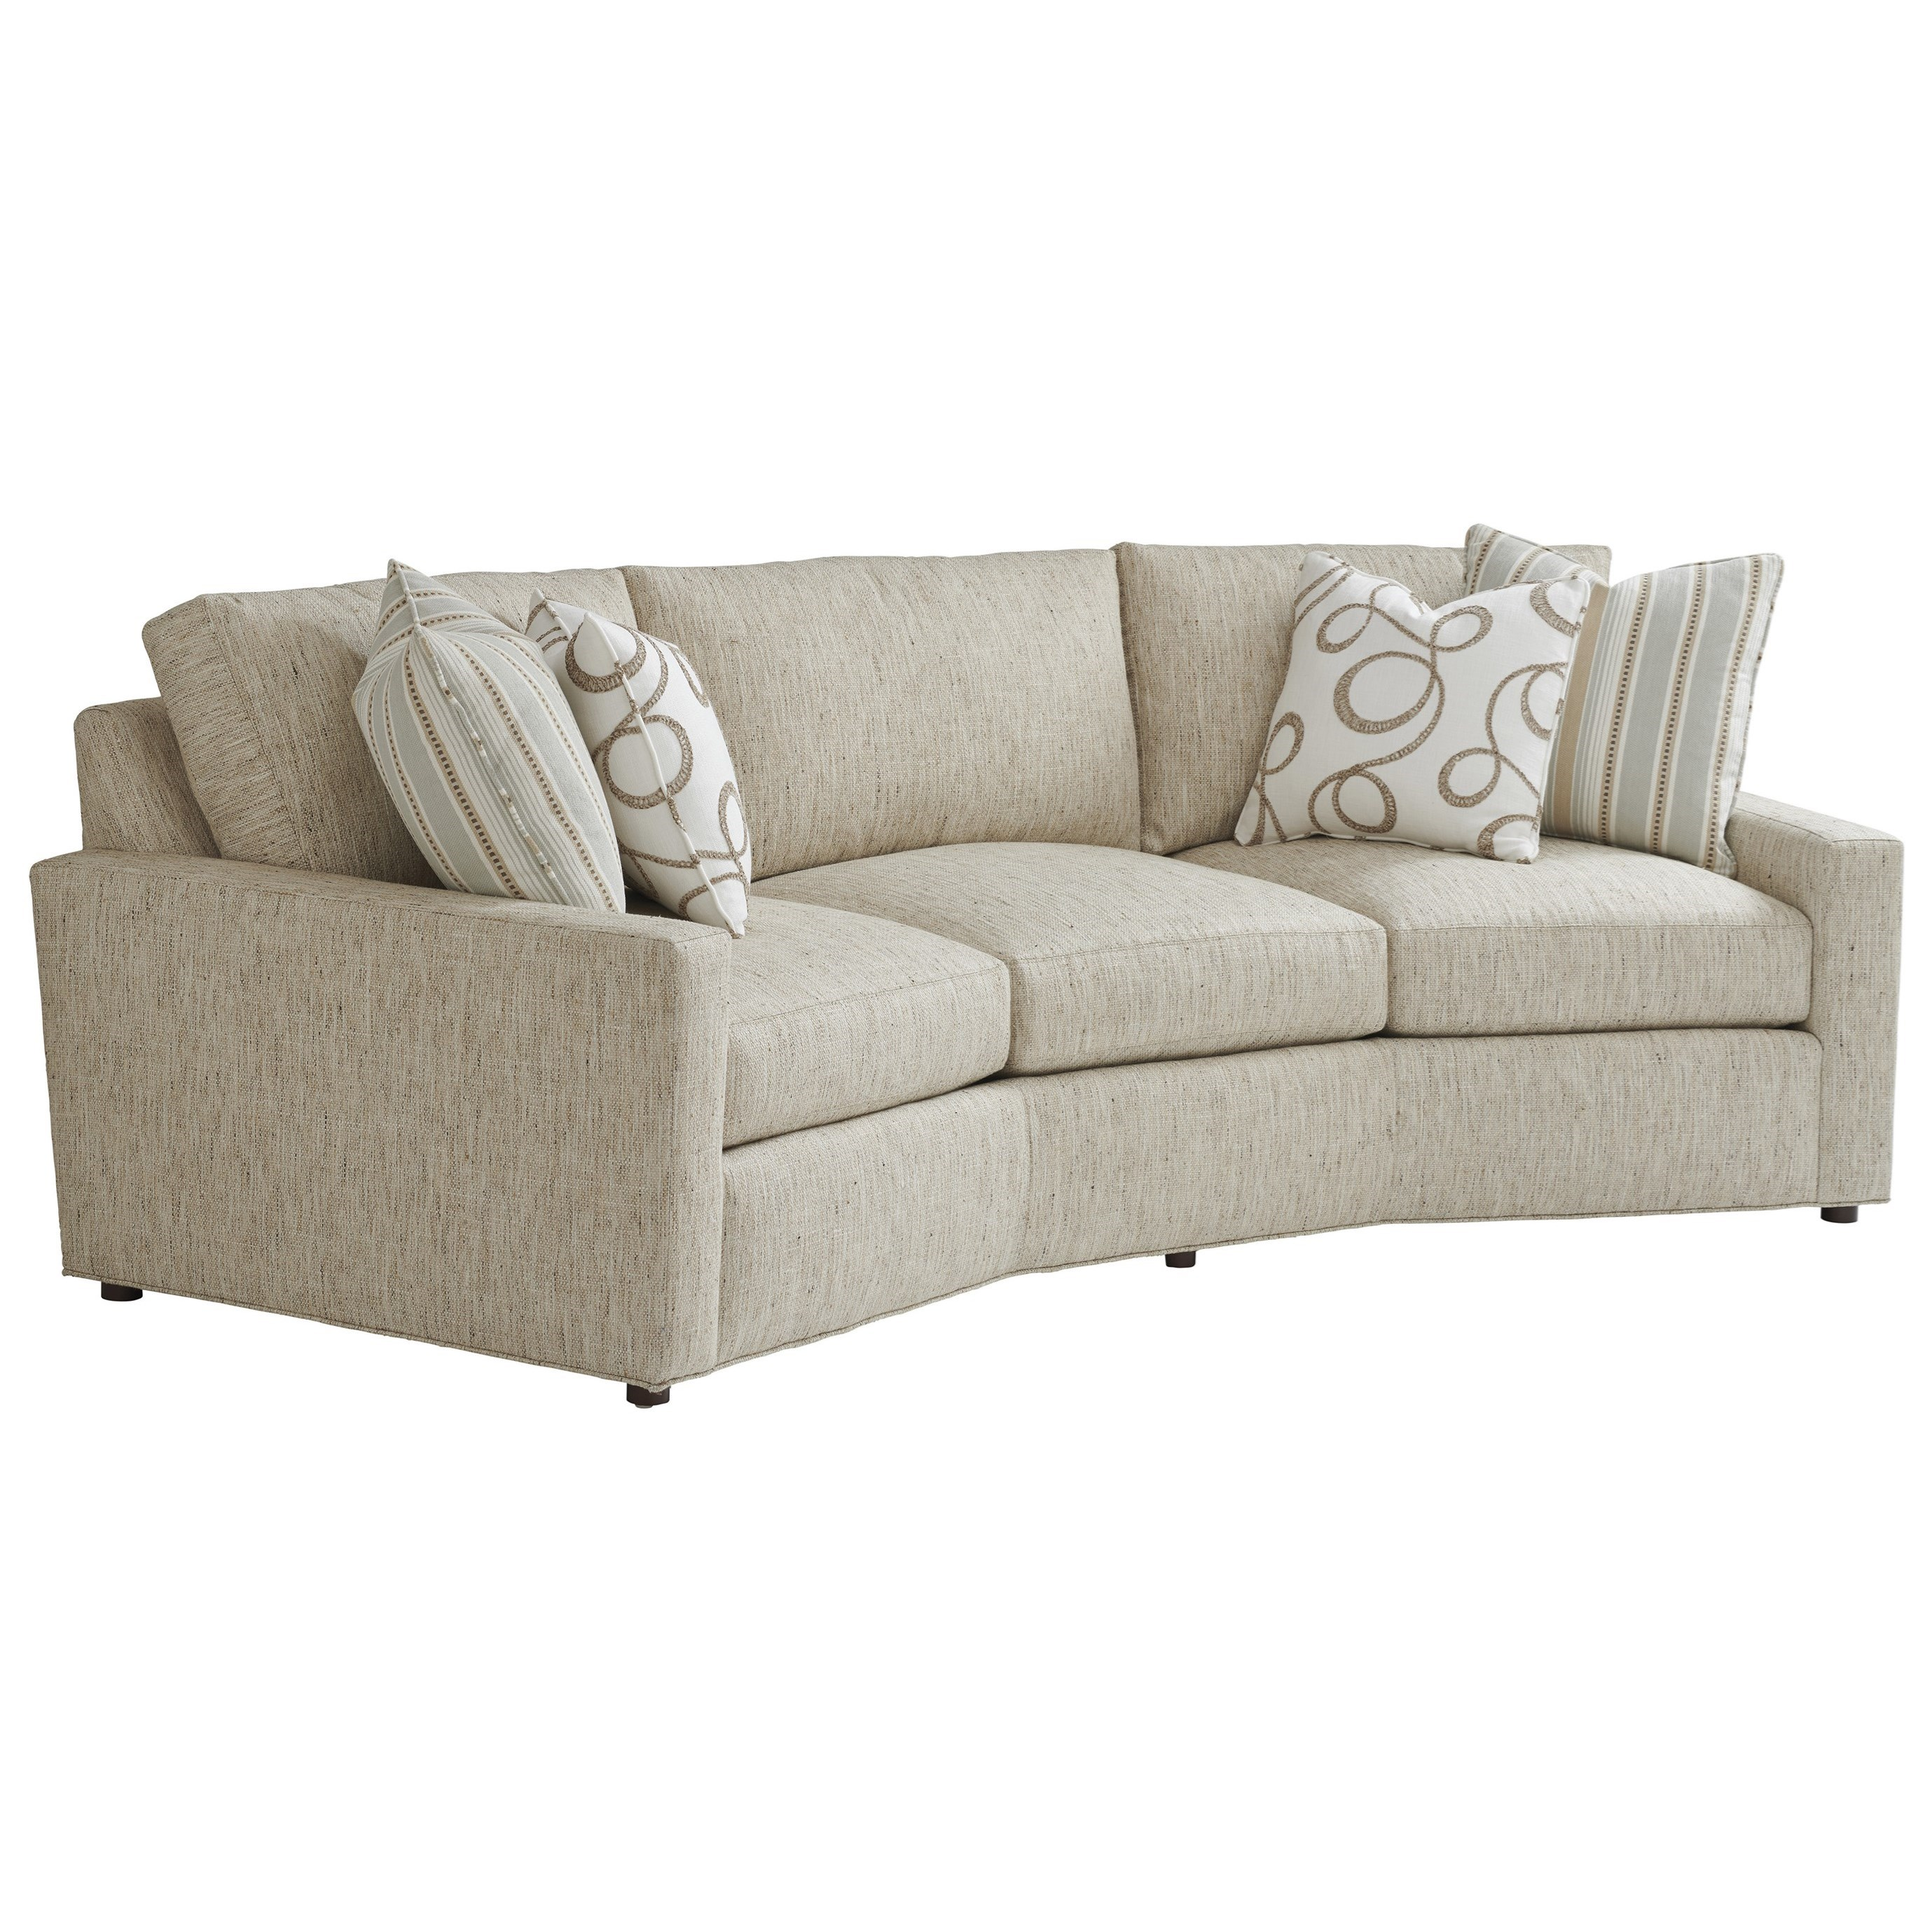 Ocean Breeze Rivershores Sofa by Tommy Bahama Home at Baer's Furniture